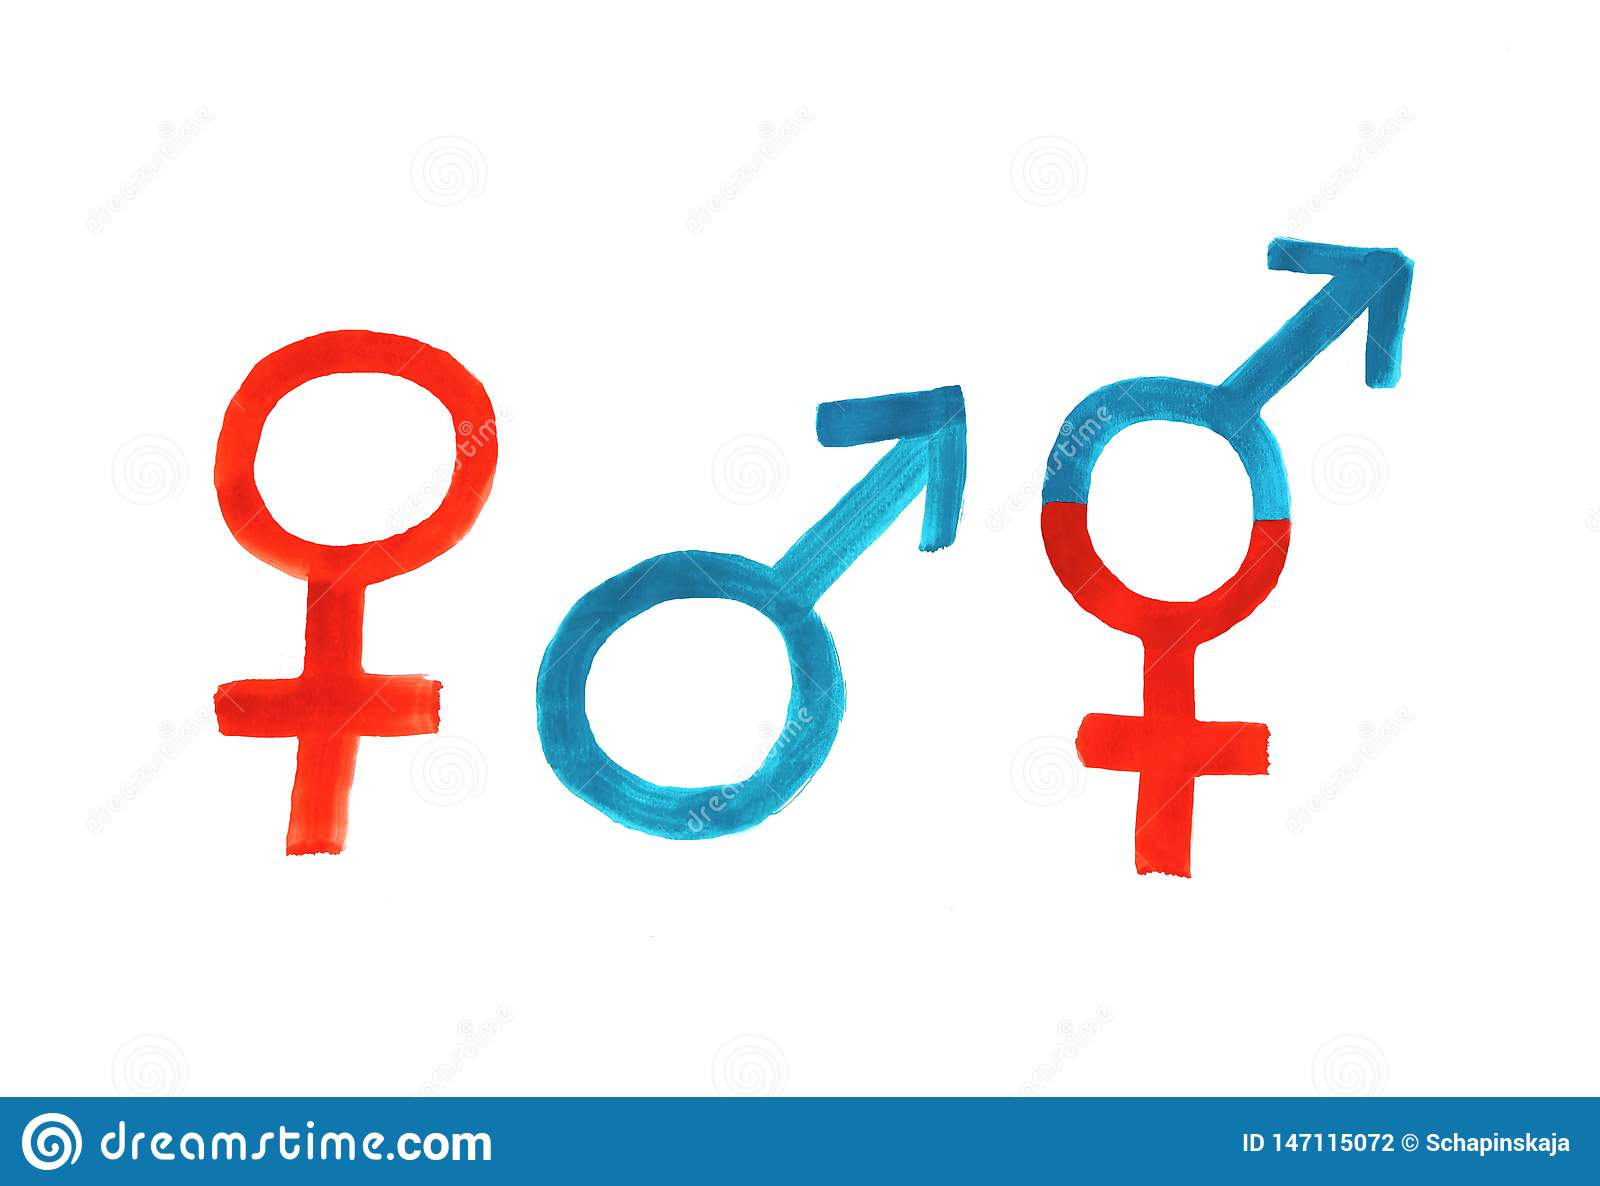 Woman-man-third gender, painting with the three symbols